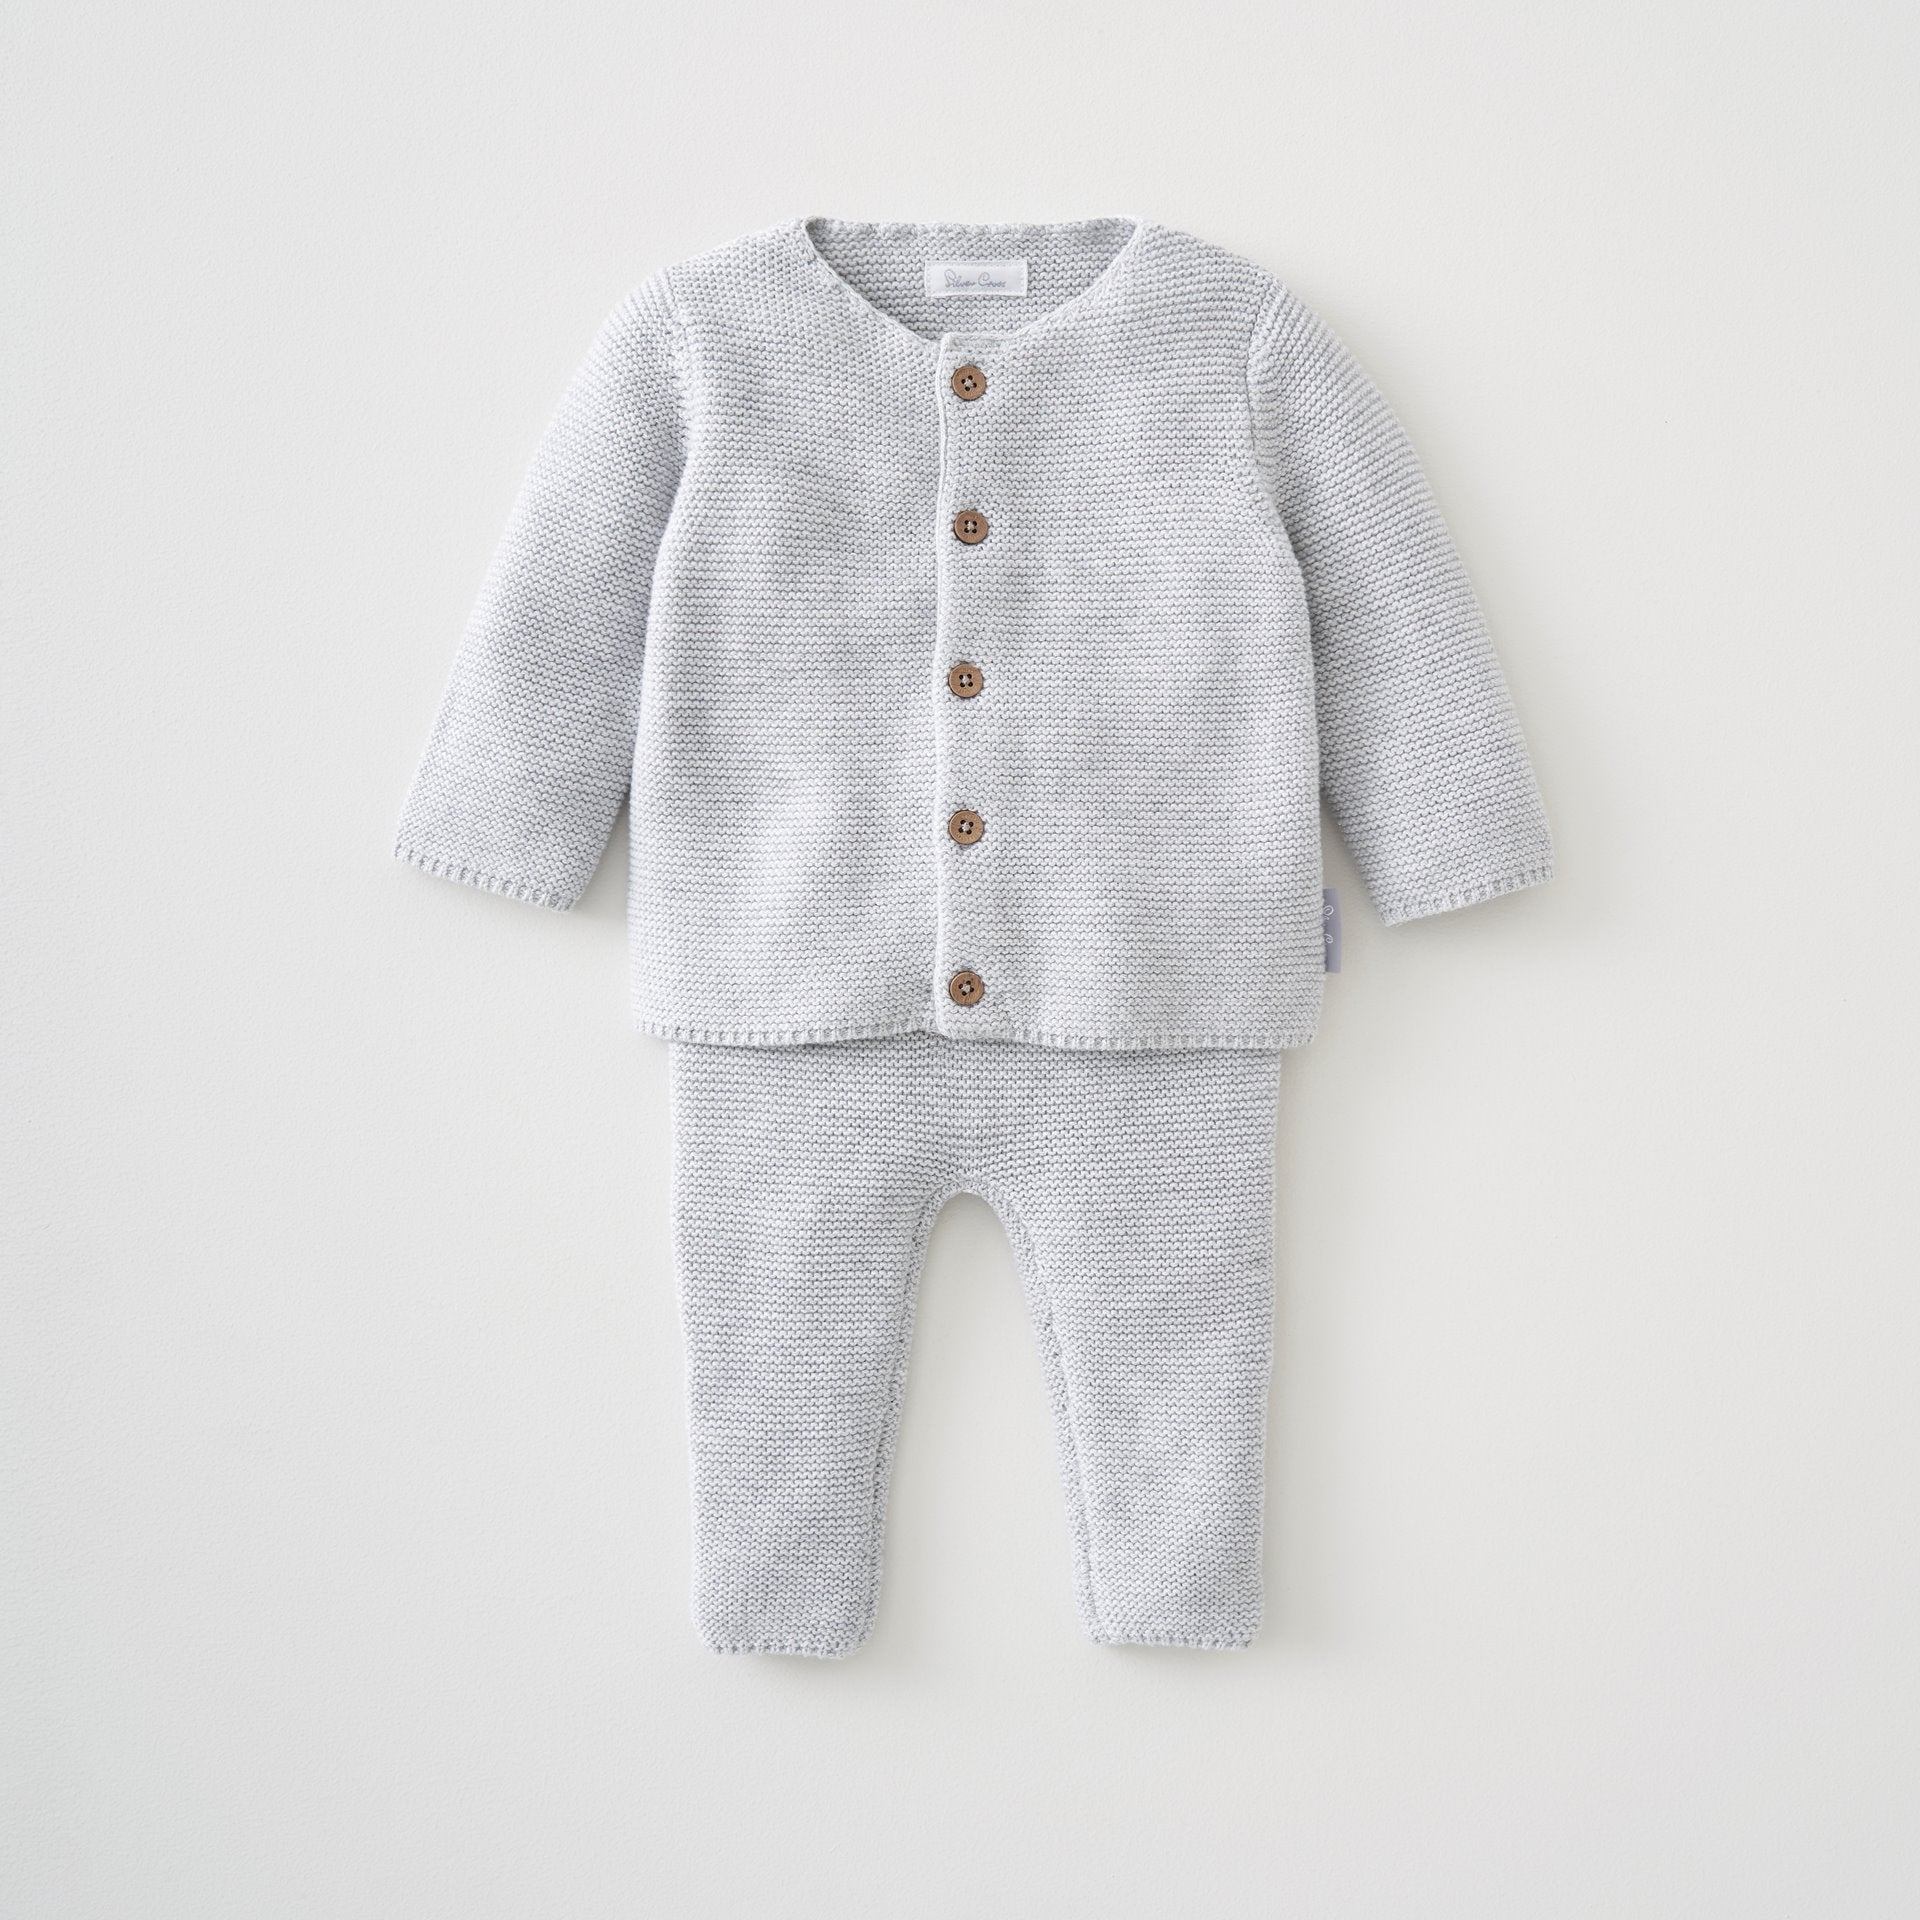 Unisex 2 Pce Knit Top & Pant Set 3-6 Months